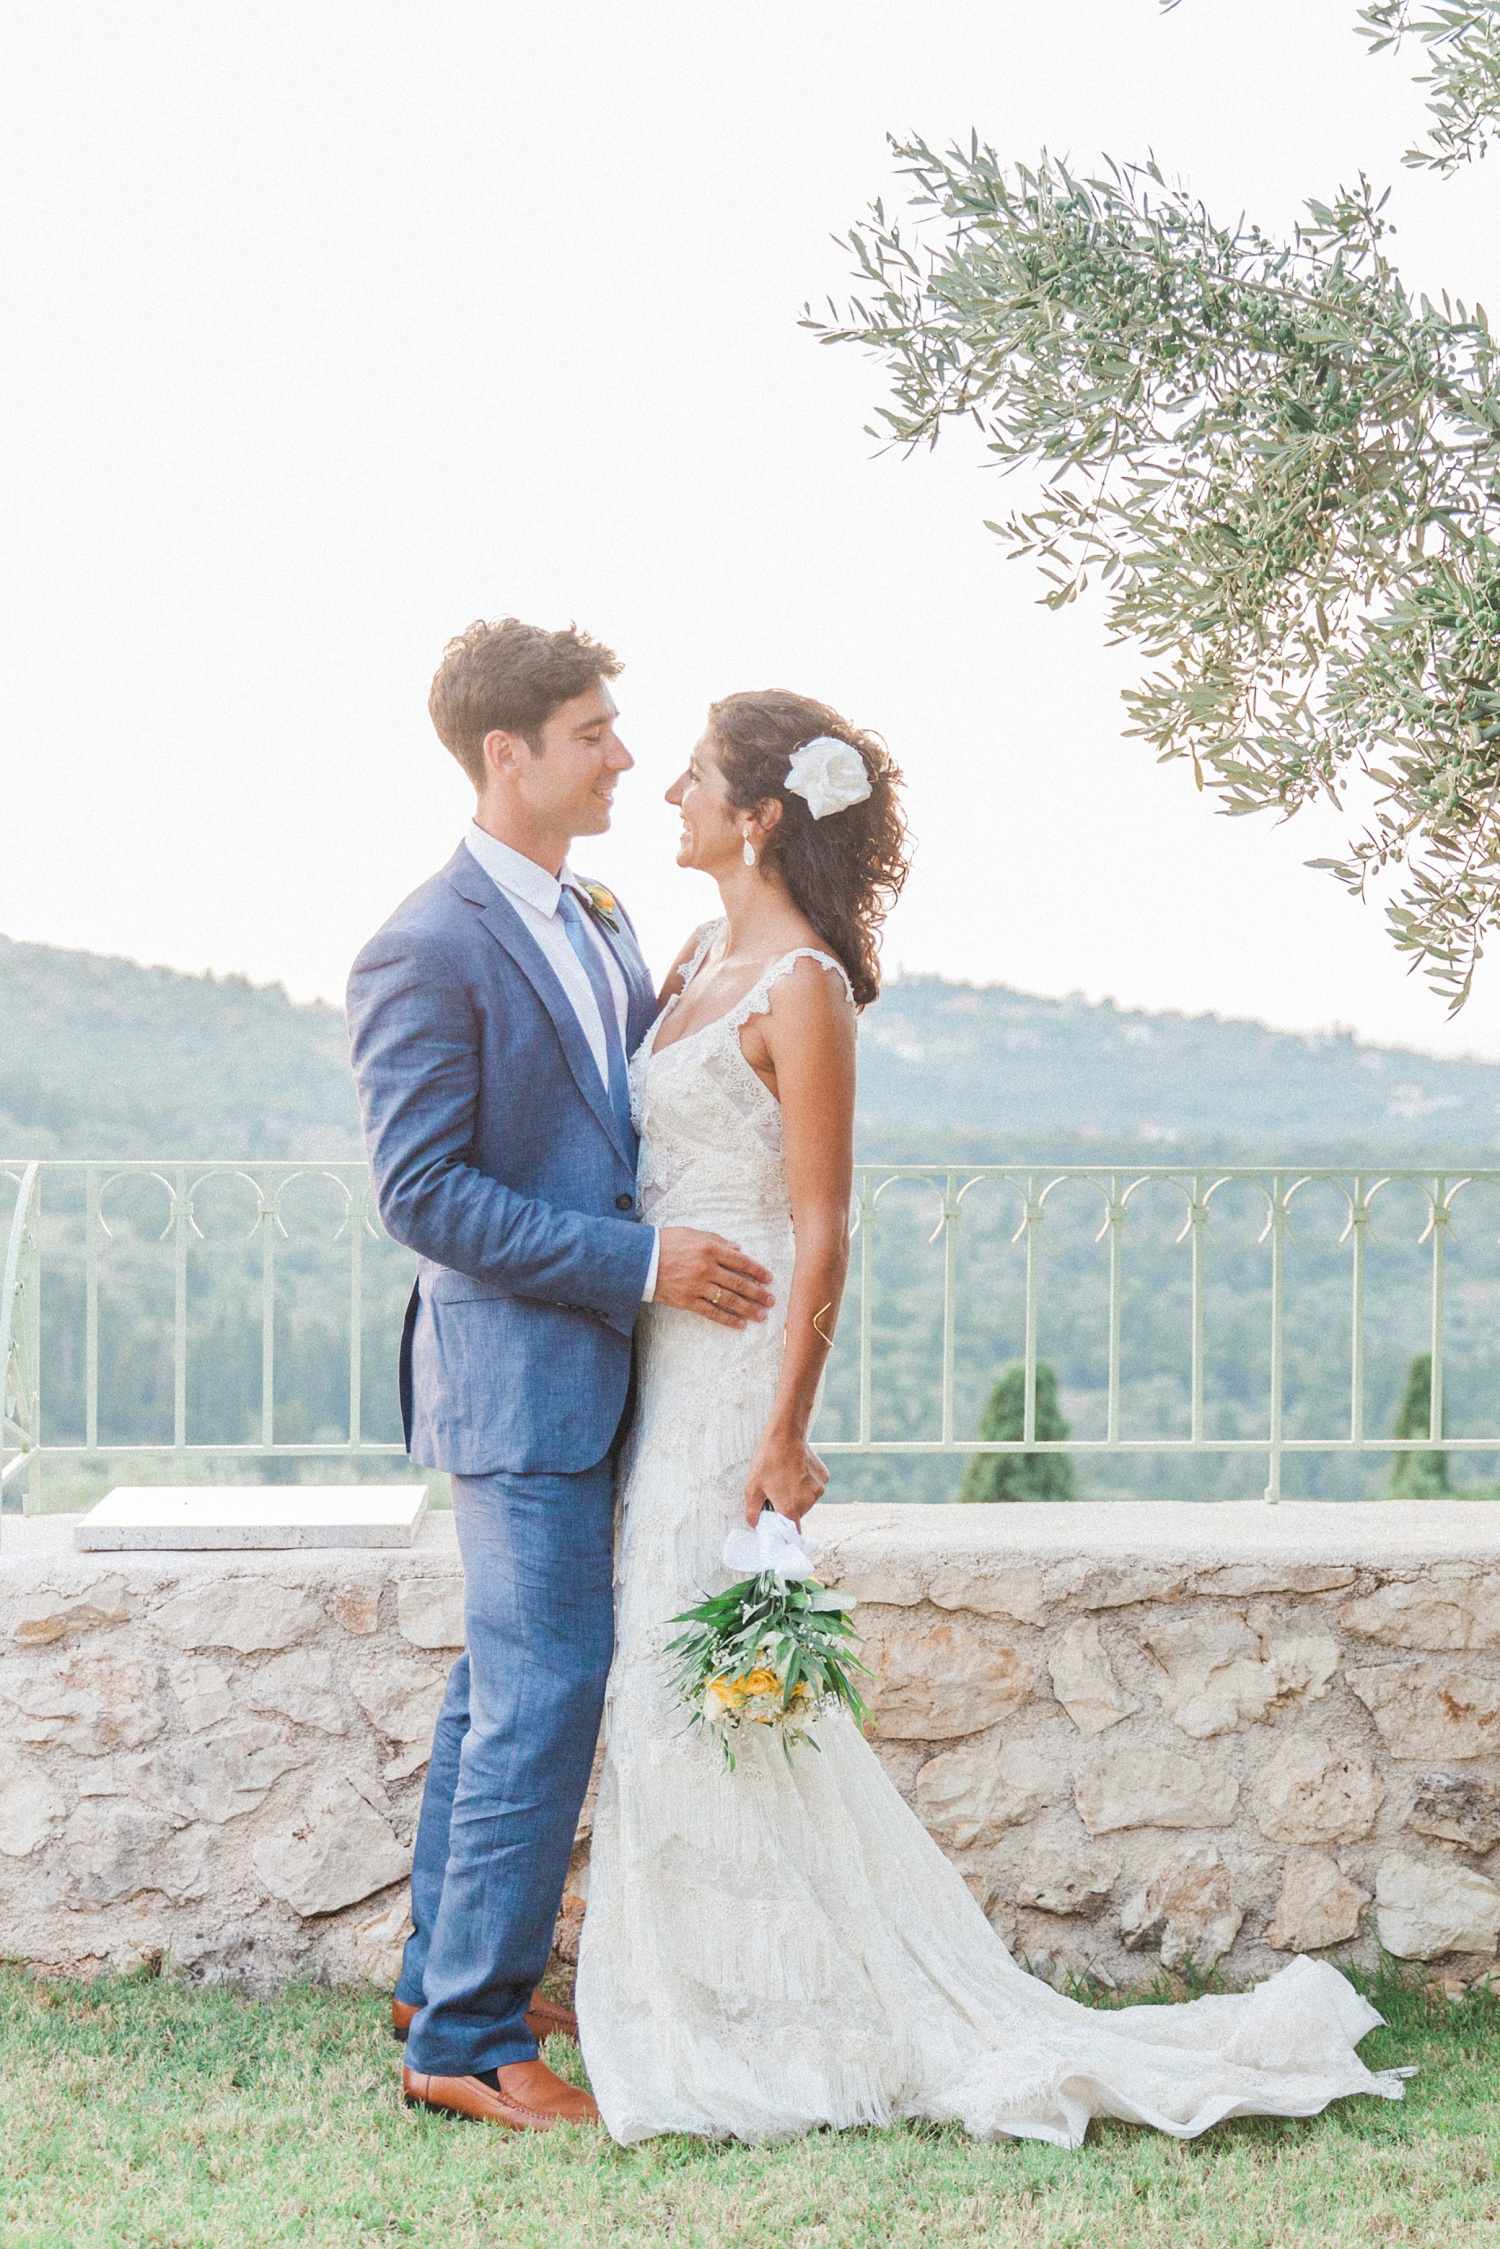 Bride and groom standing under an olive tree at their wedding in Ithaca, Greece